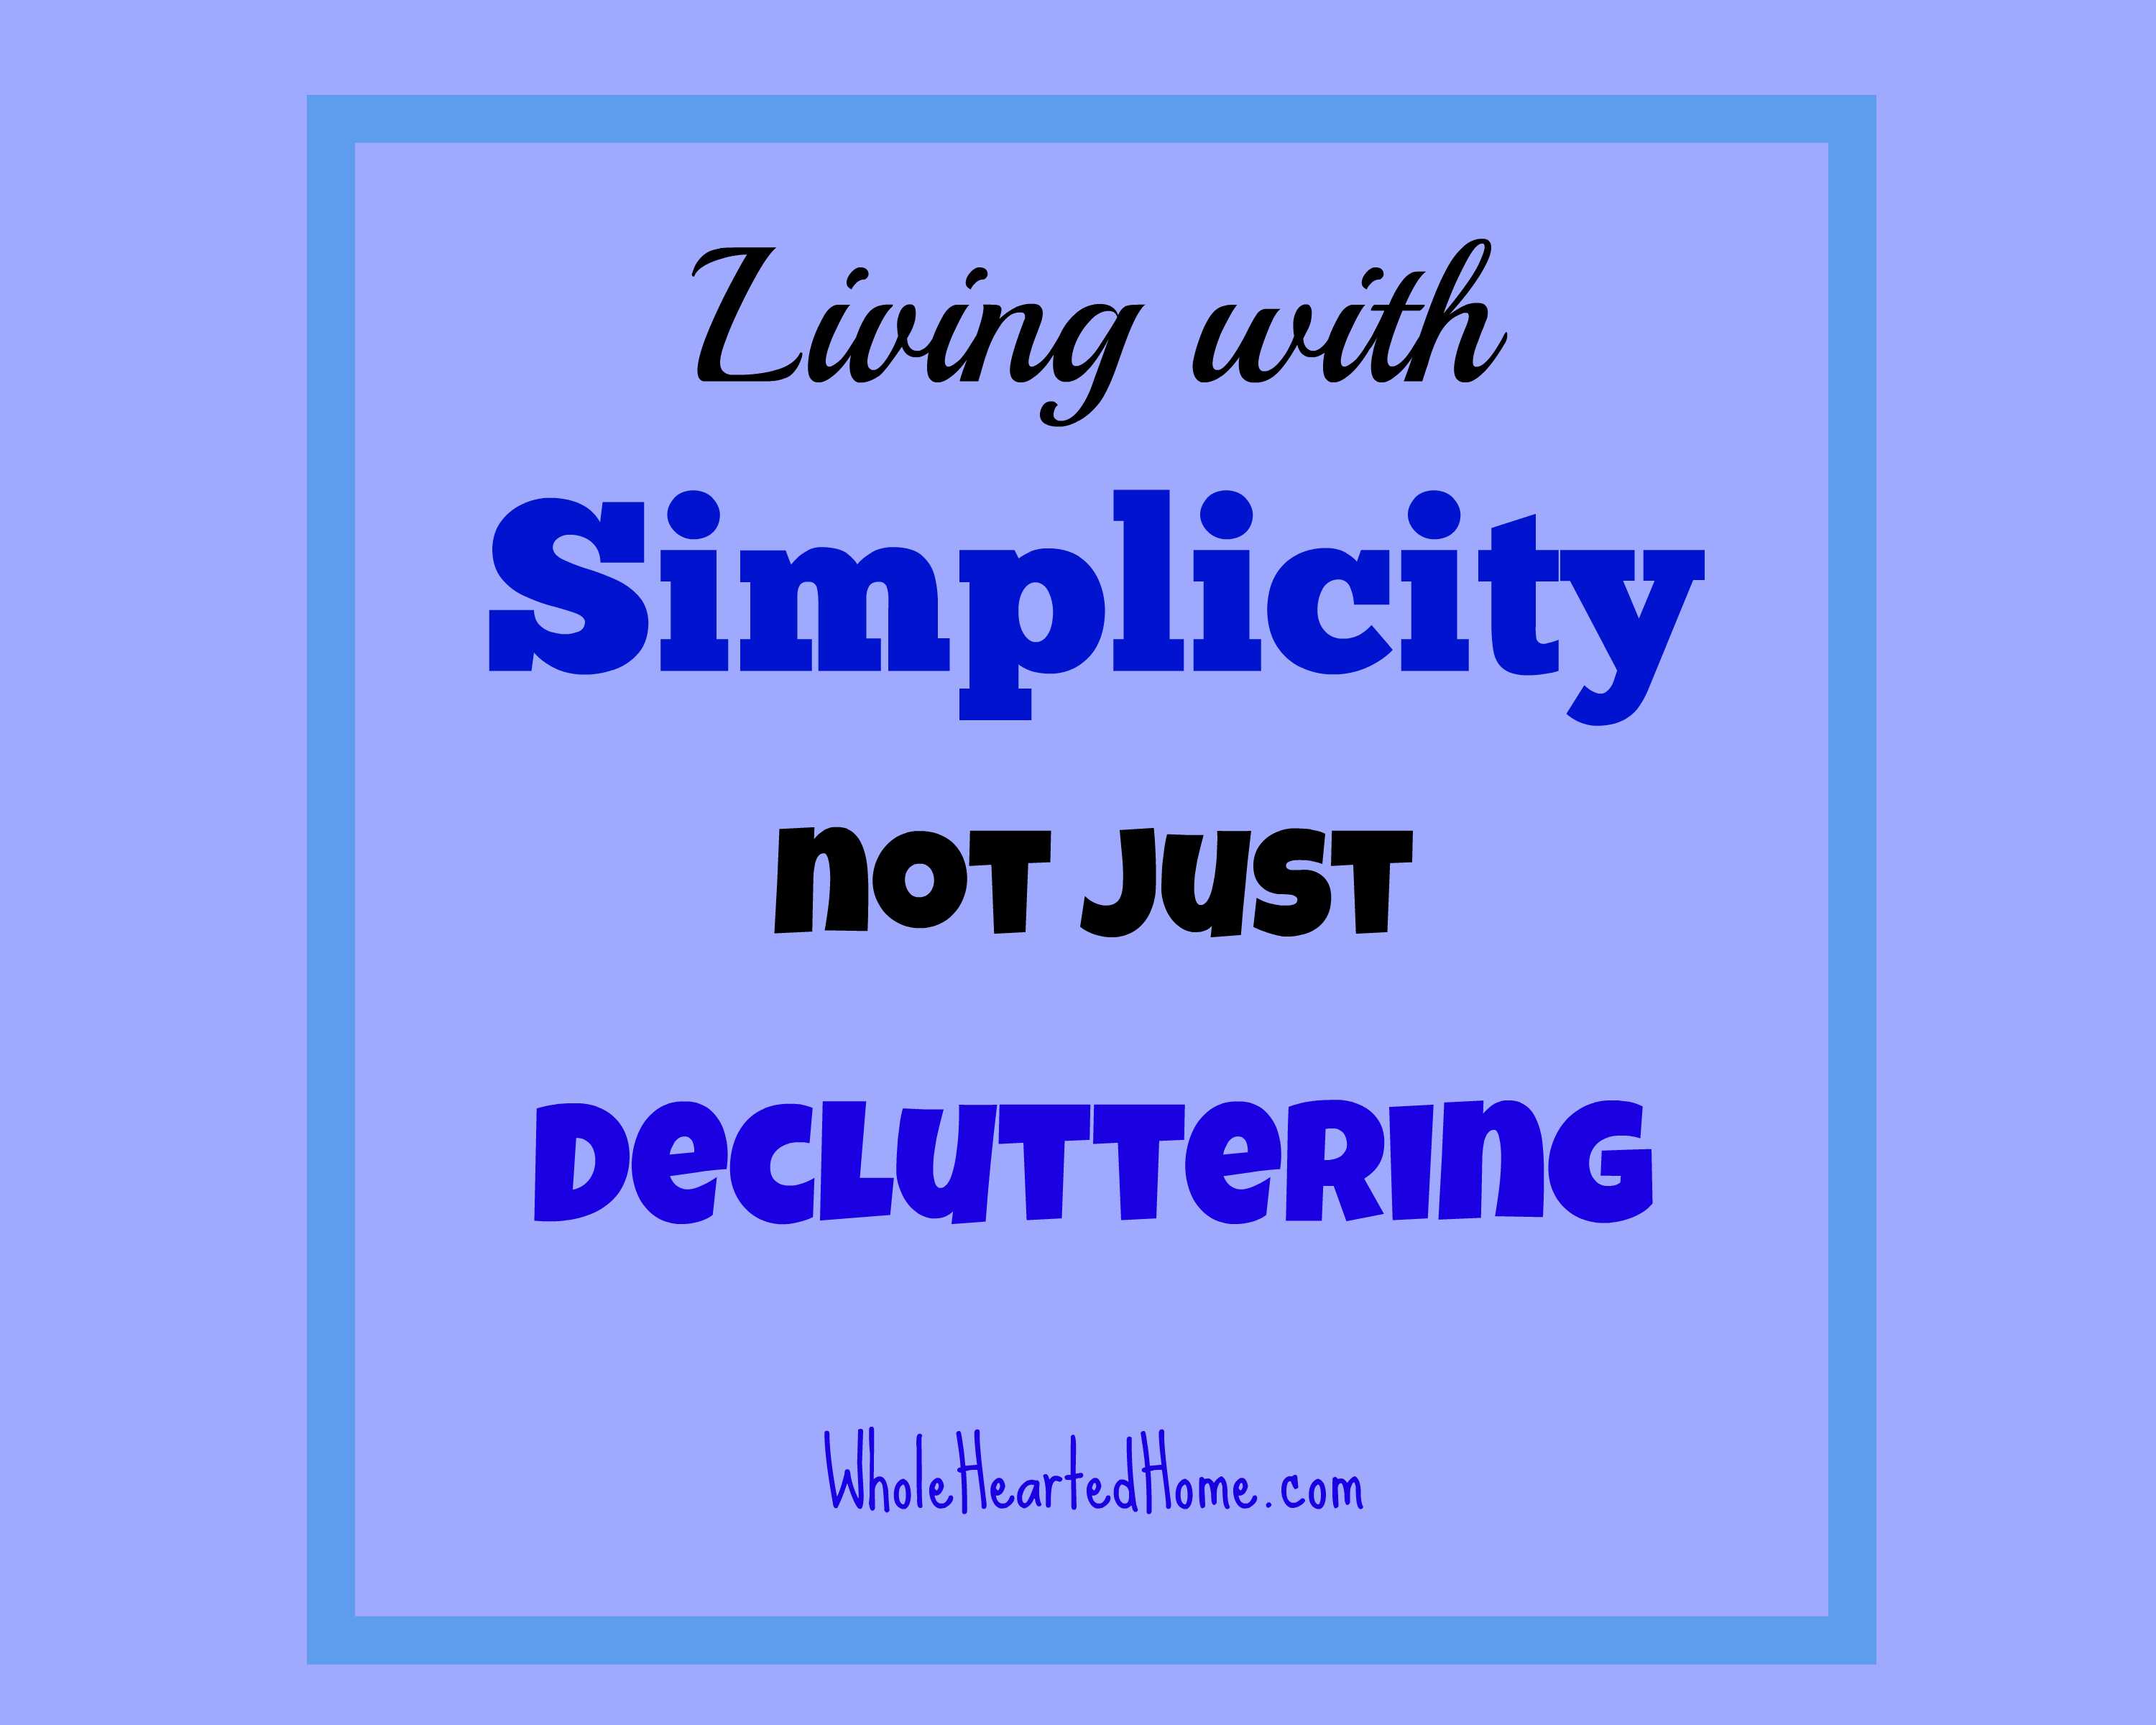 Living with Simplicity not just Decluttering + WholeHearted Wednesday #129